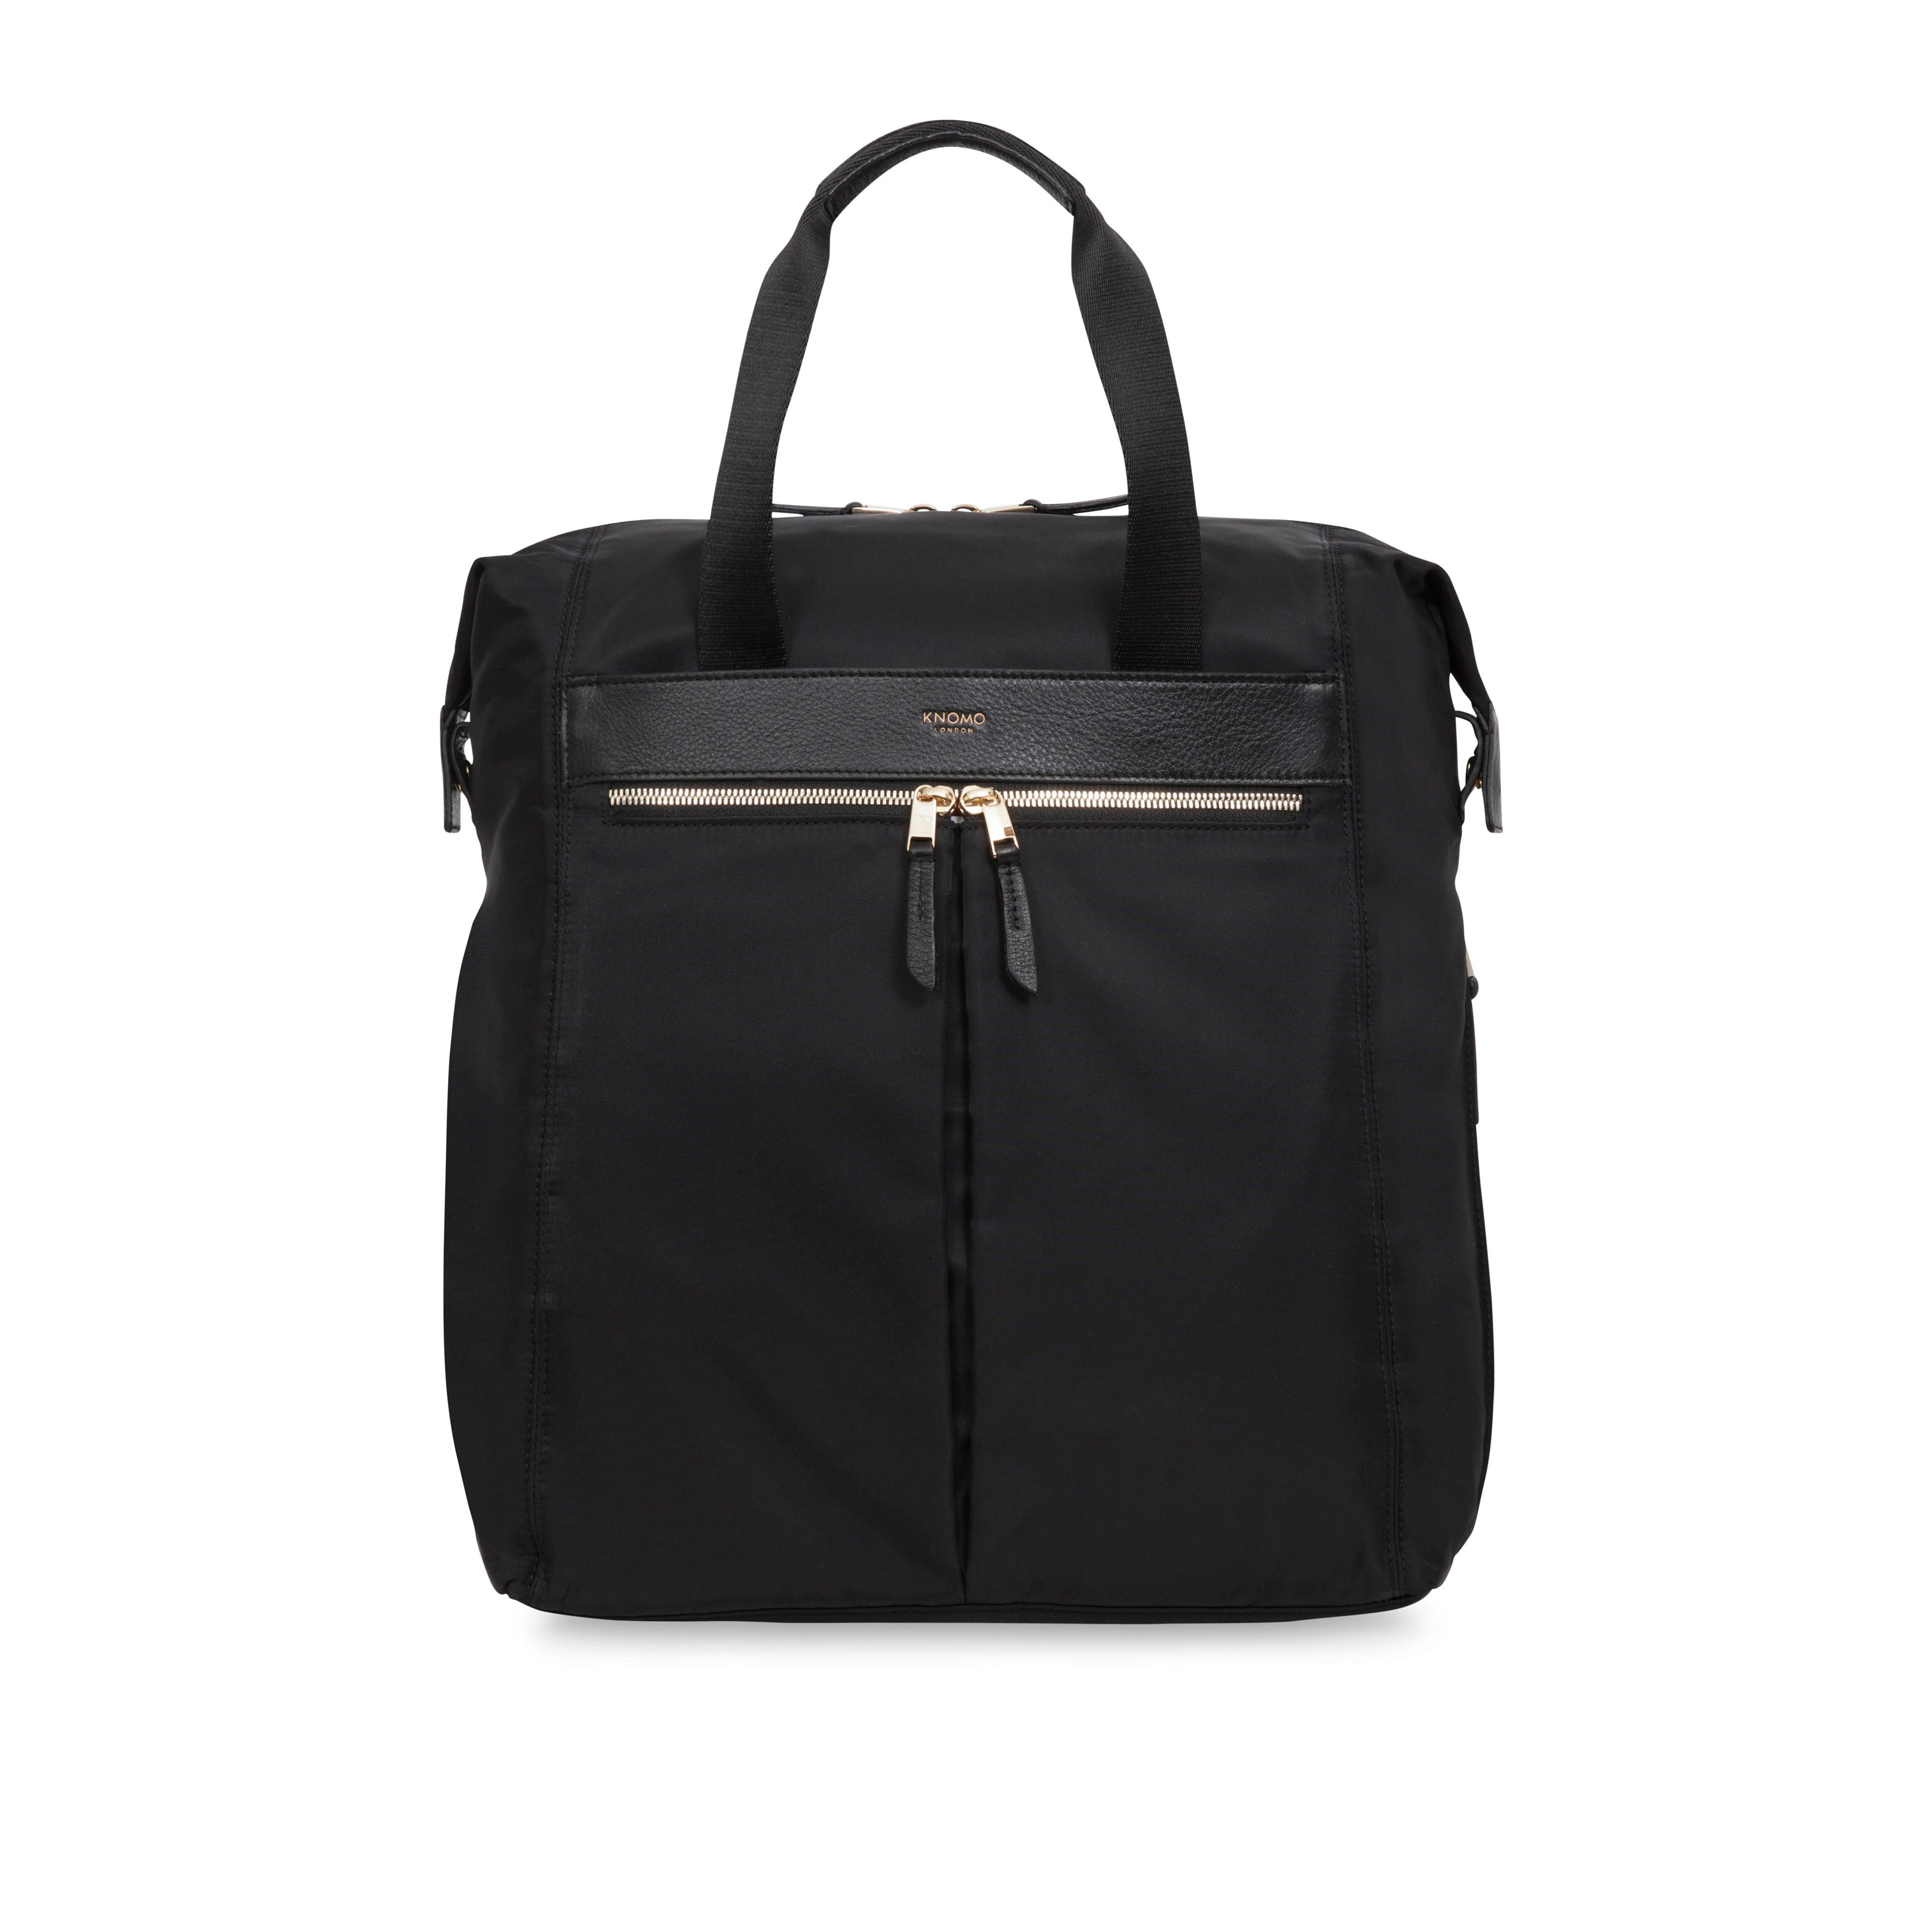 Knomo Chiltern Tote Backpack Bag, Black